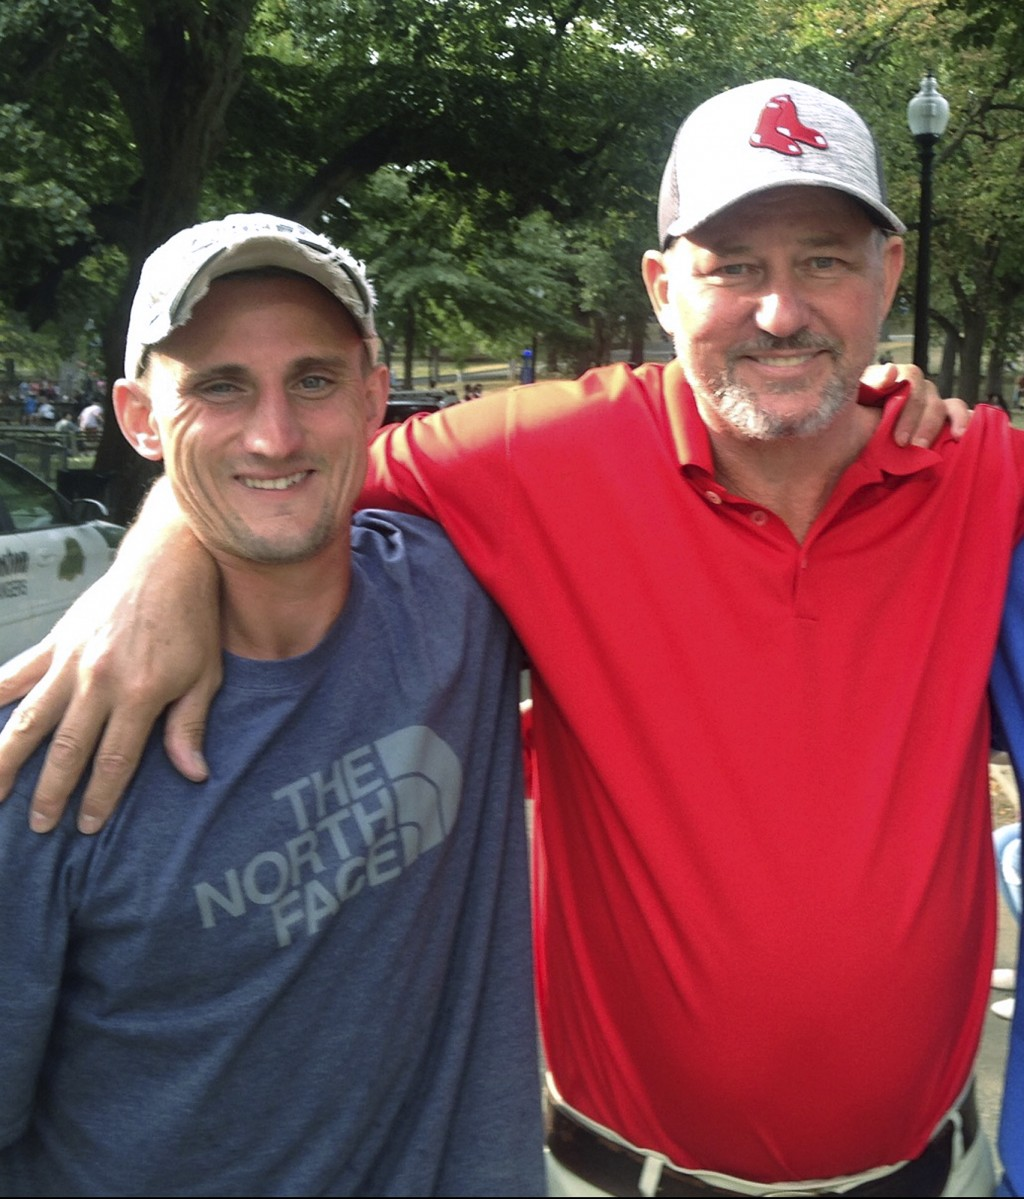 In this undated photo, Spencer Palozej, left, poses with his father Dean Palozej. Spencer Palozej died of a fentanyl overdose in Connecticut in 2018.